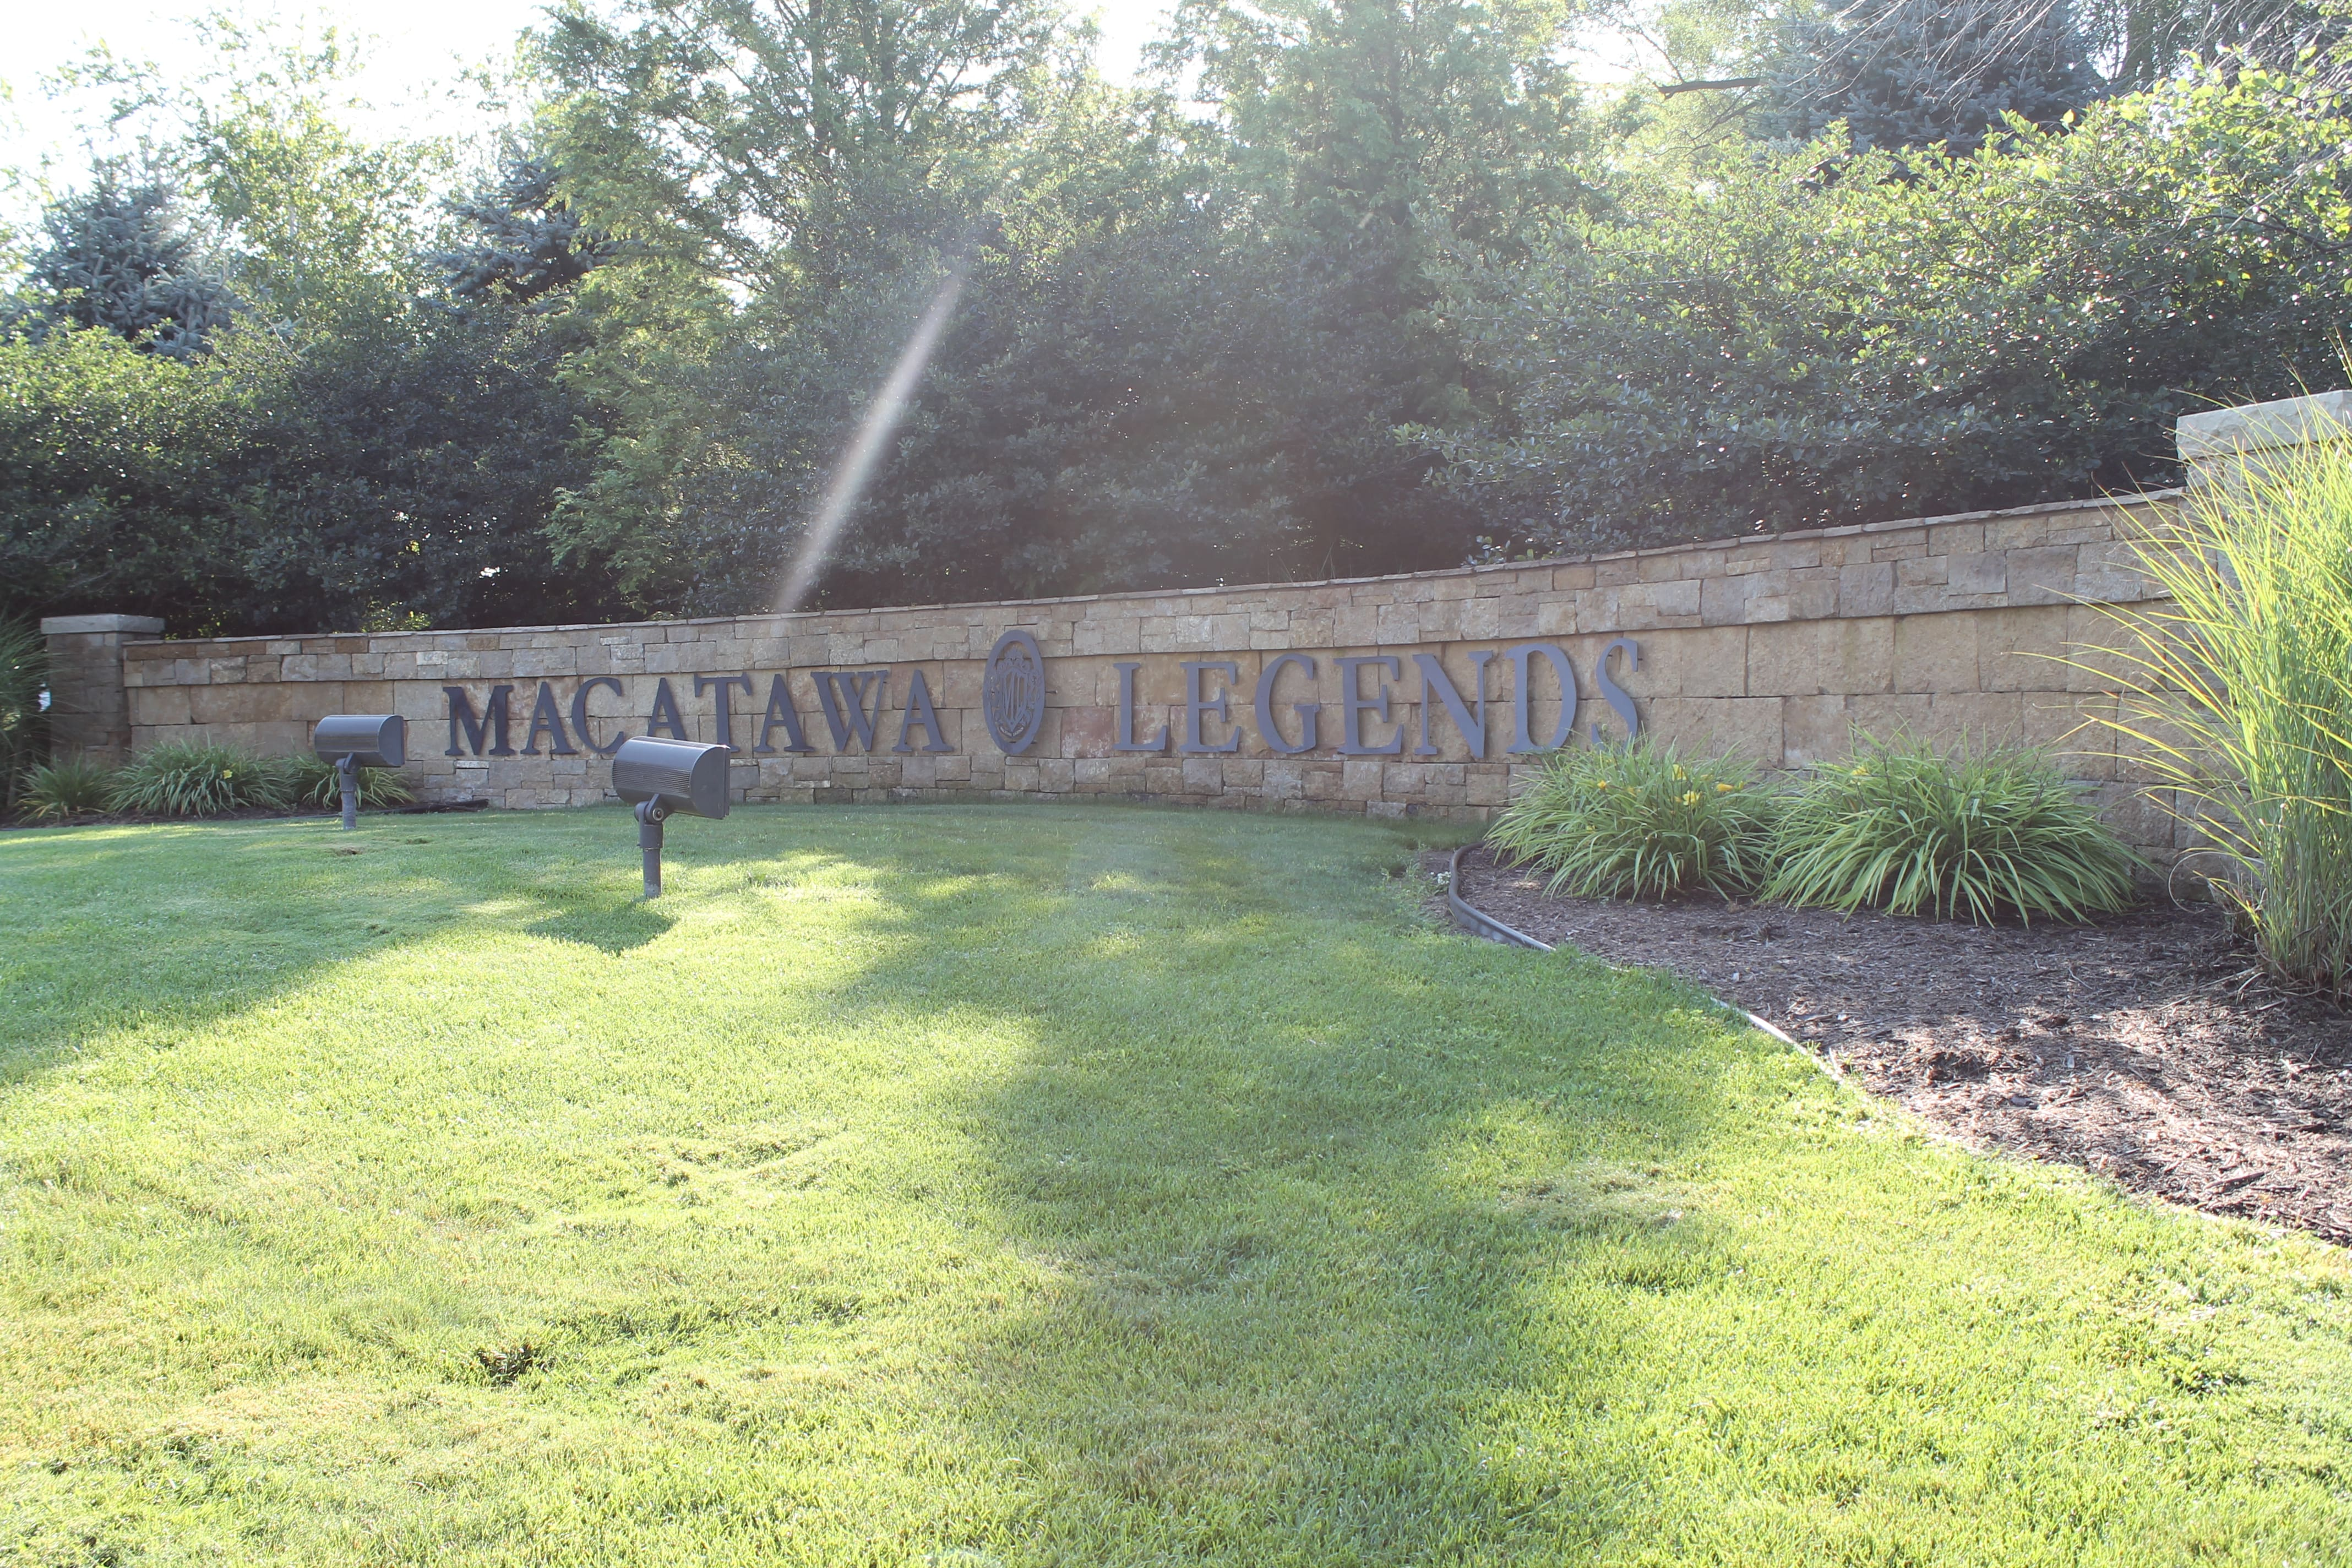 Entrance sign of Macatawa Legends